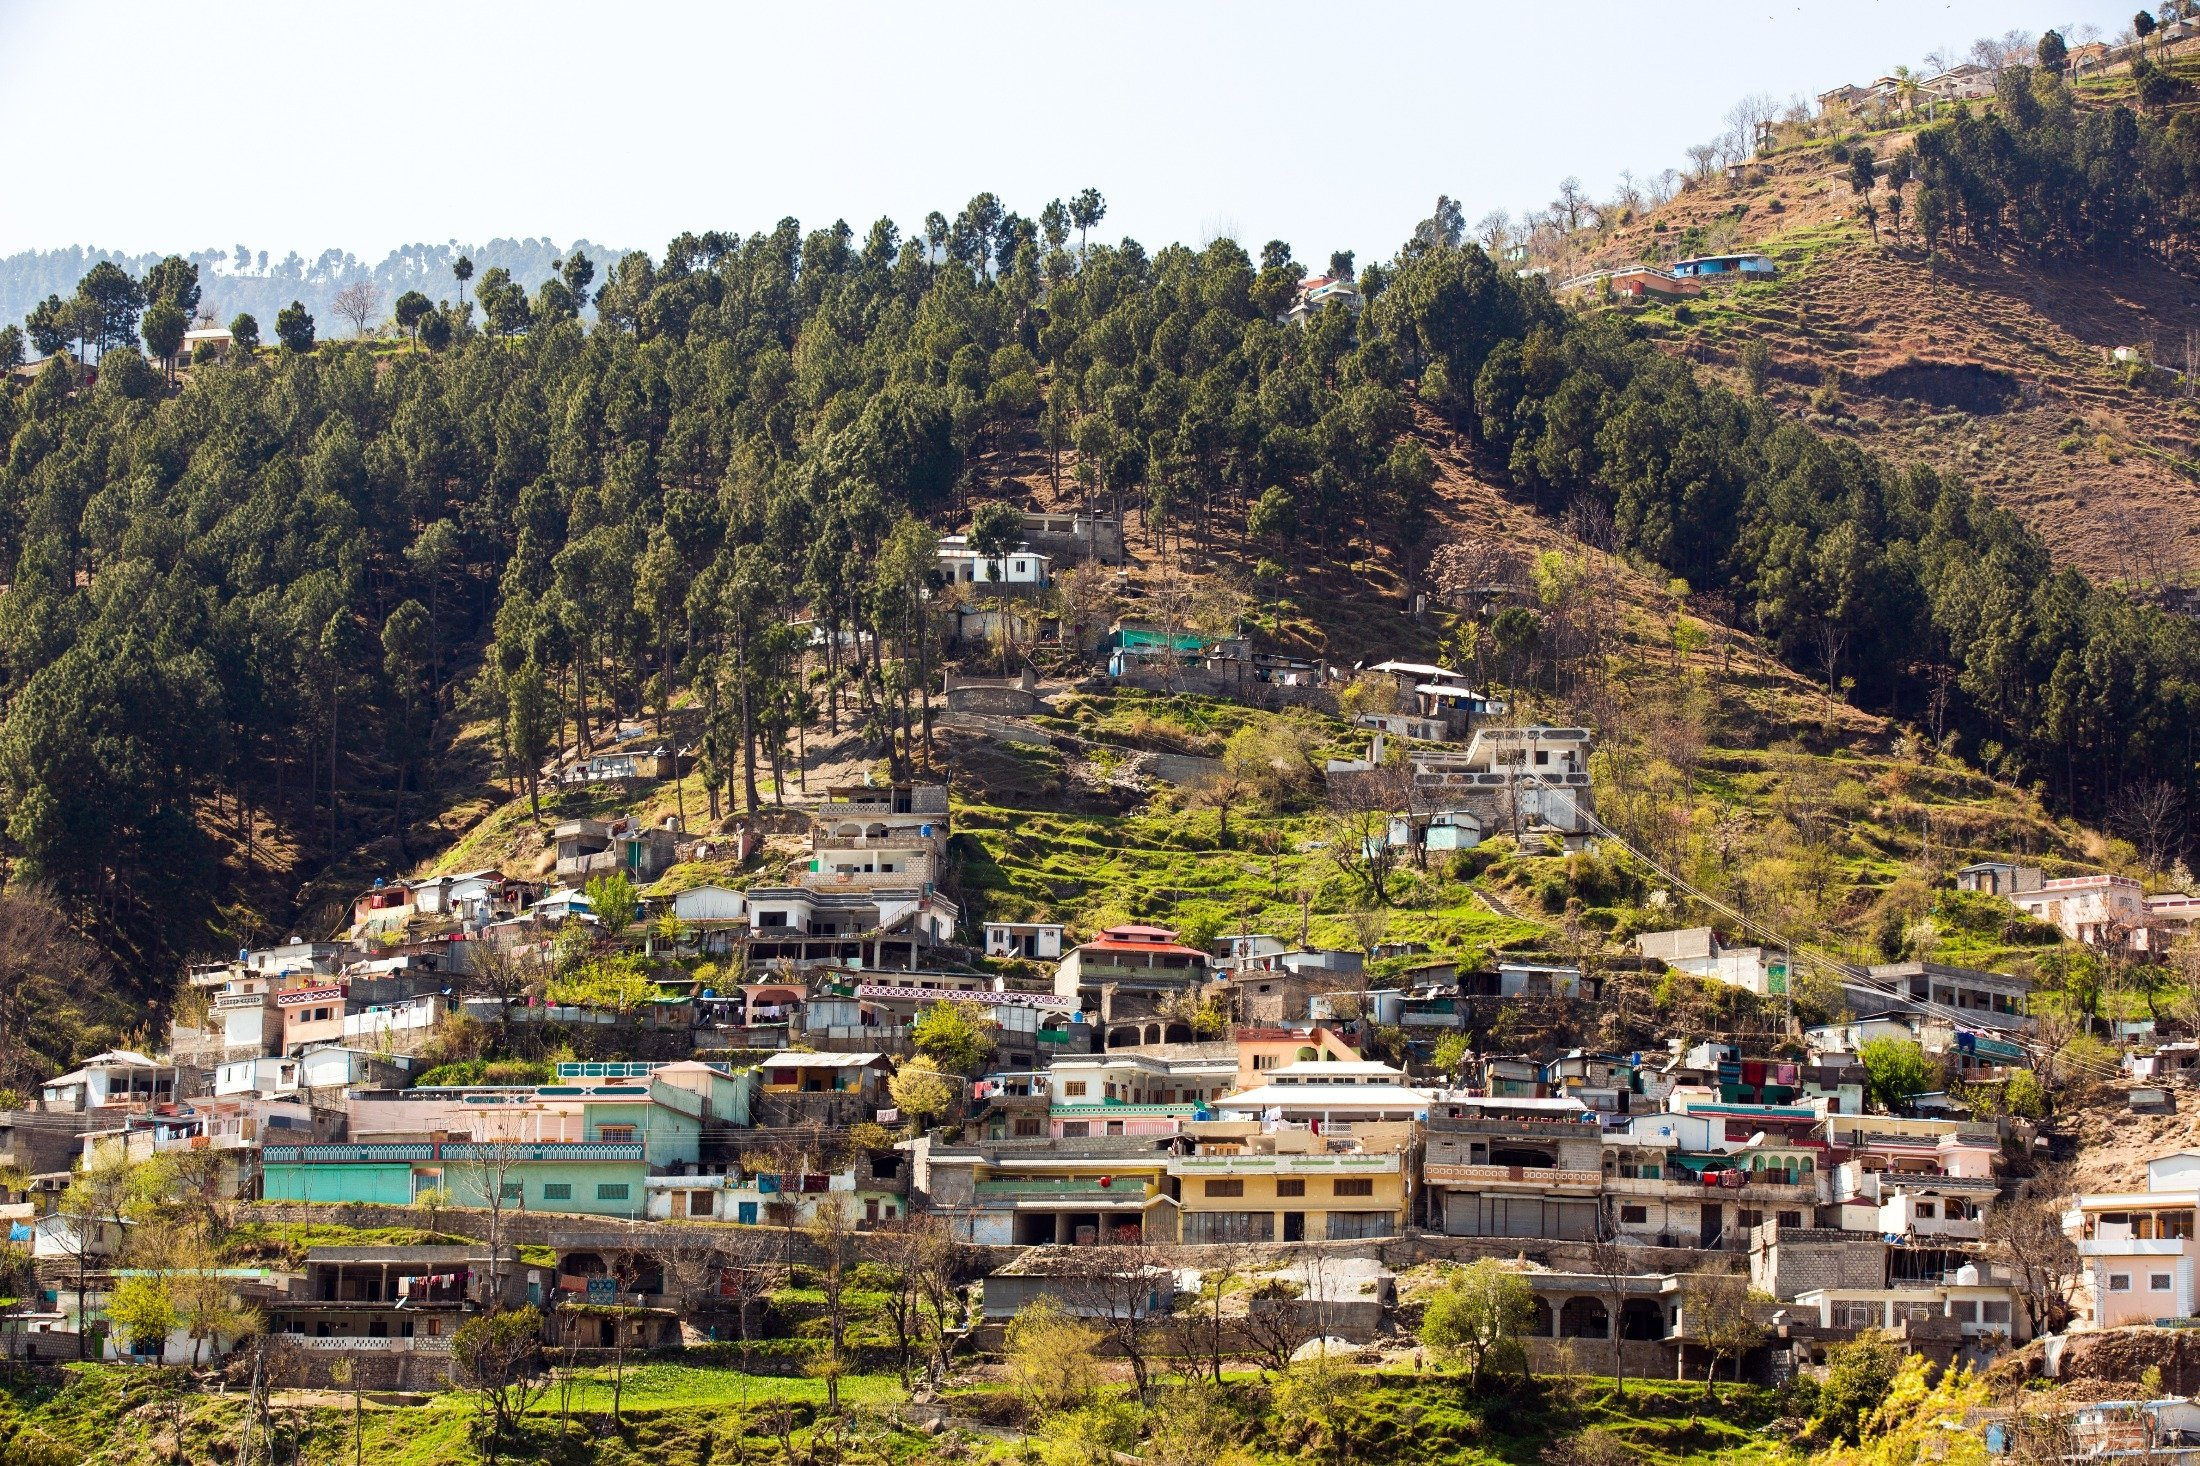 A village is situated on the mountain side in the Balakot district of Manshera, Pakistan. (Shutterstock Photo)